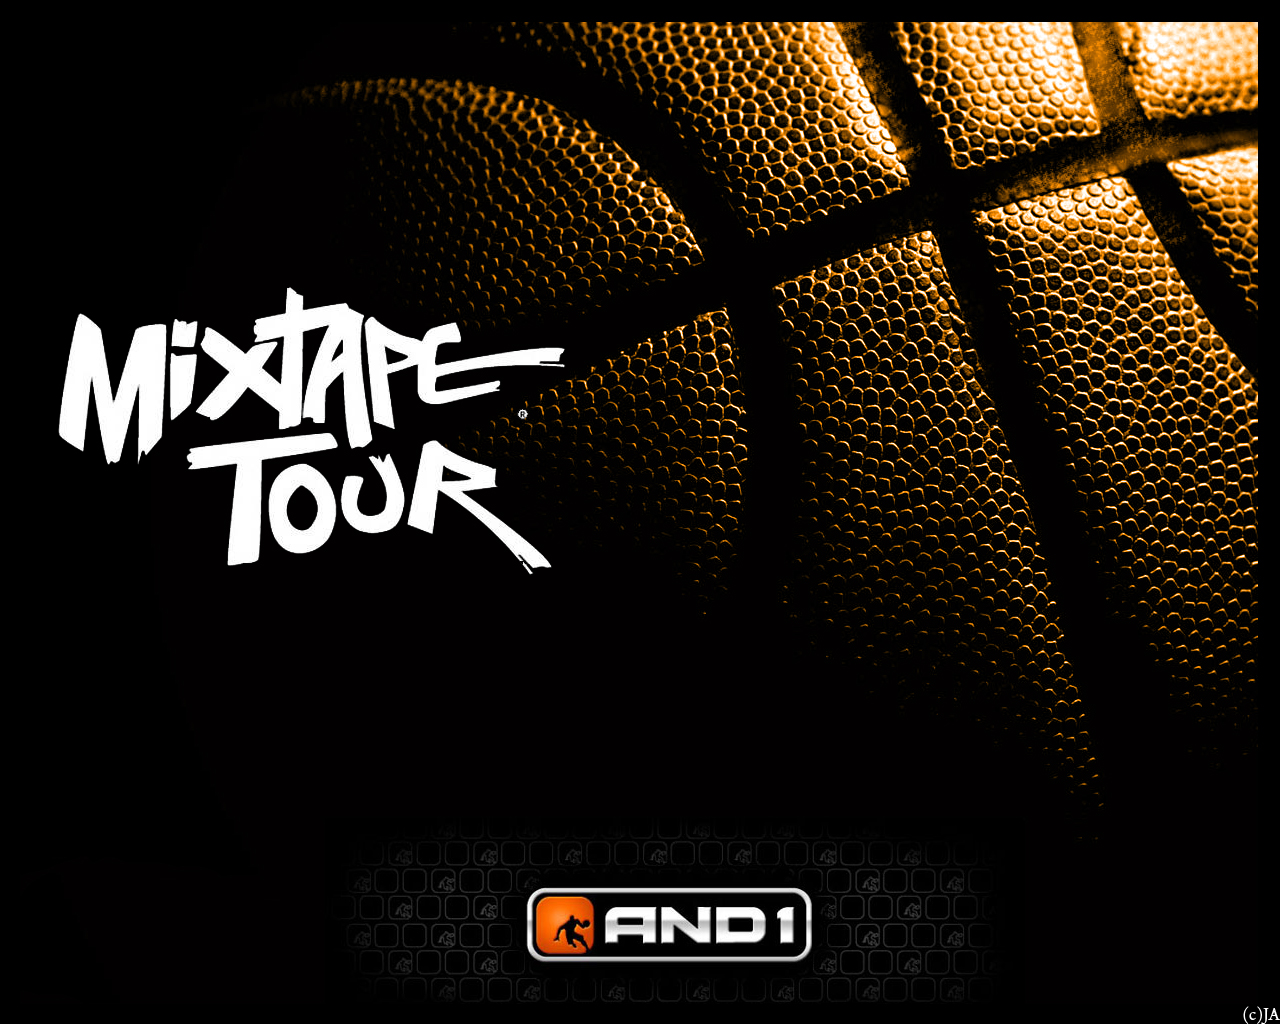 basketball wallpaper free Download 1280x1024